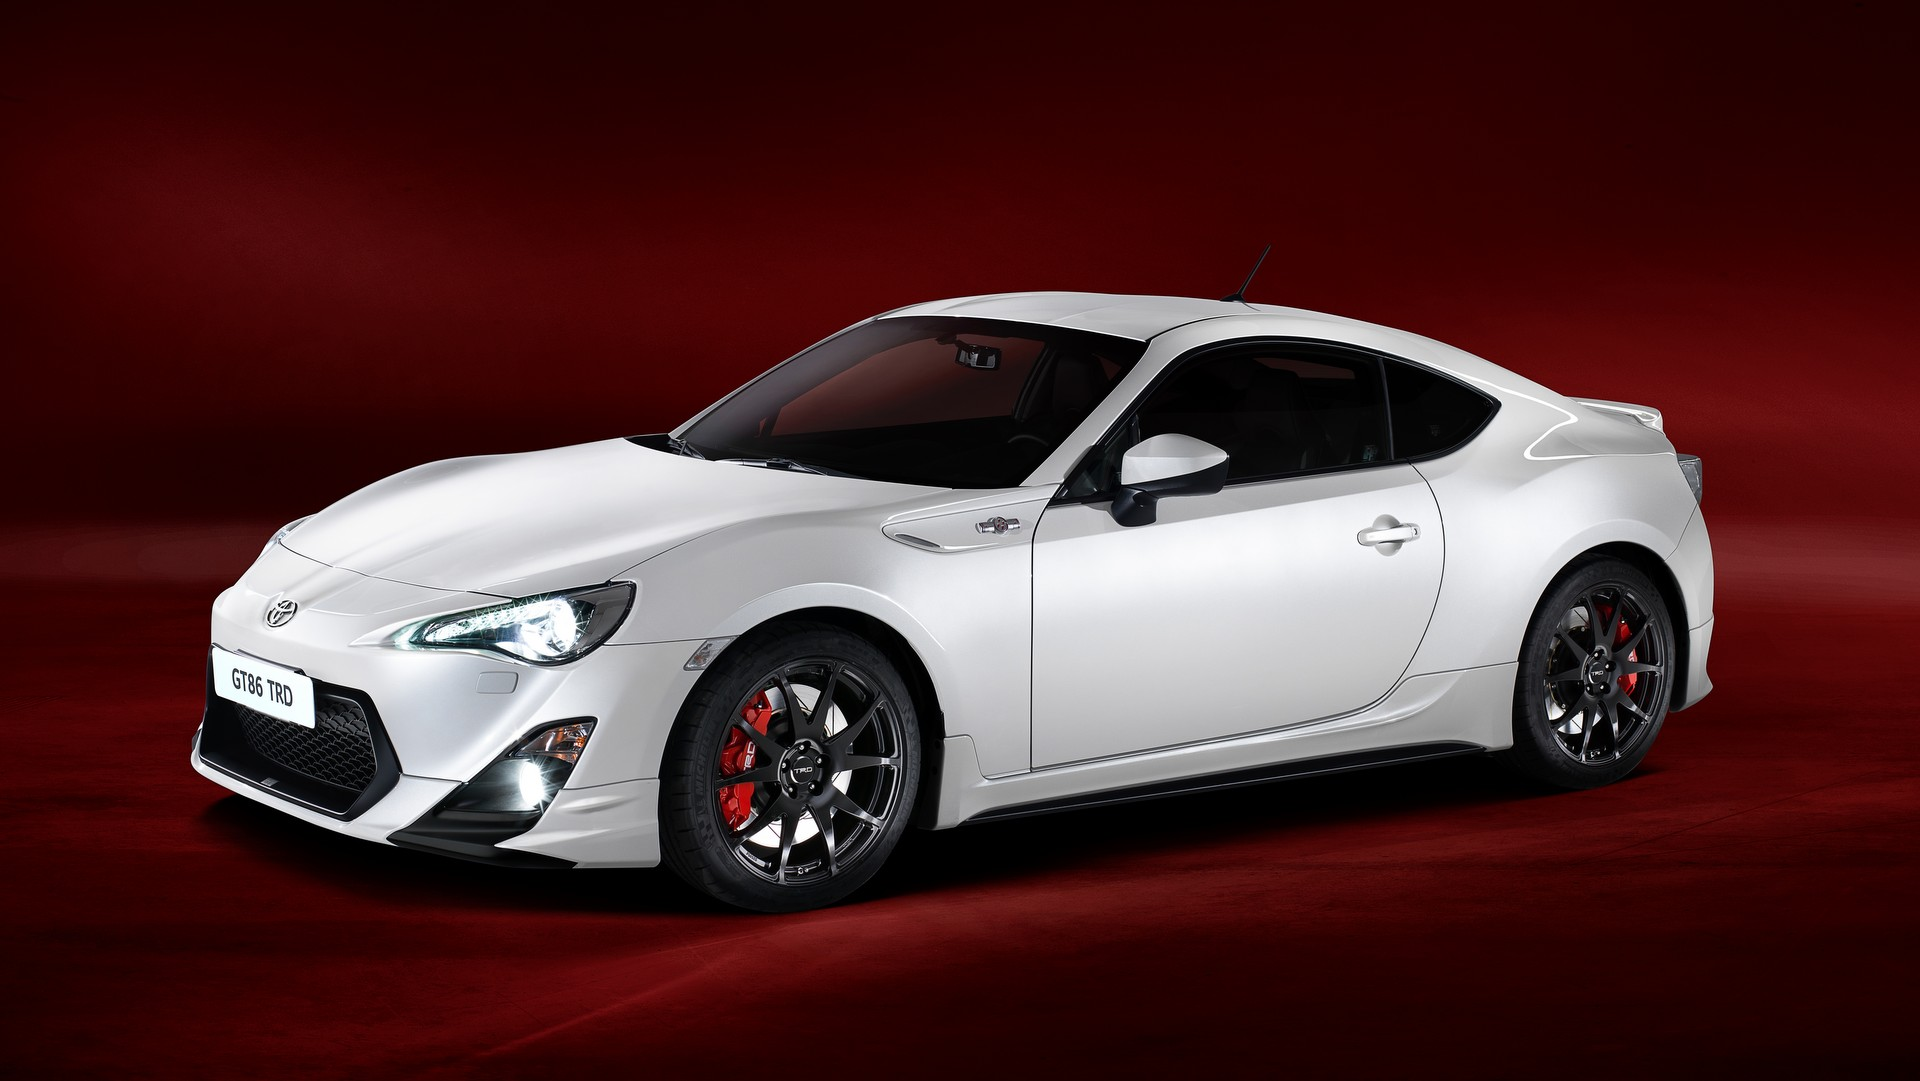 2013 Toyota Gt 86 Pictures Information And Specs Auto